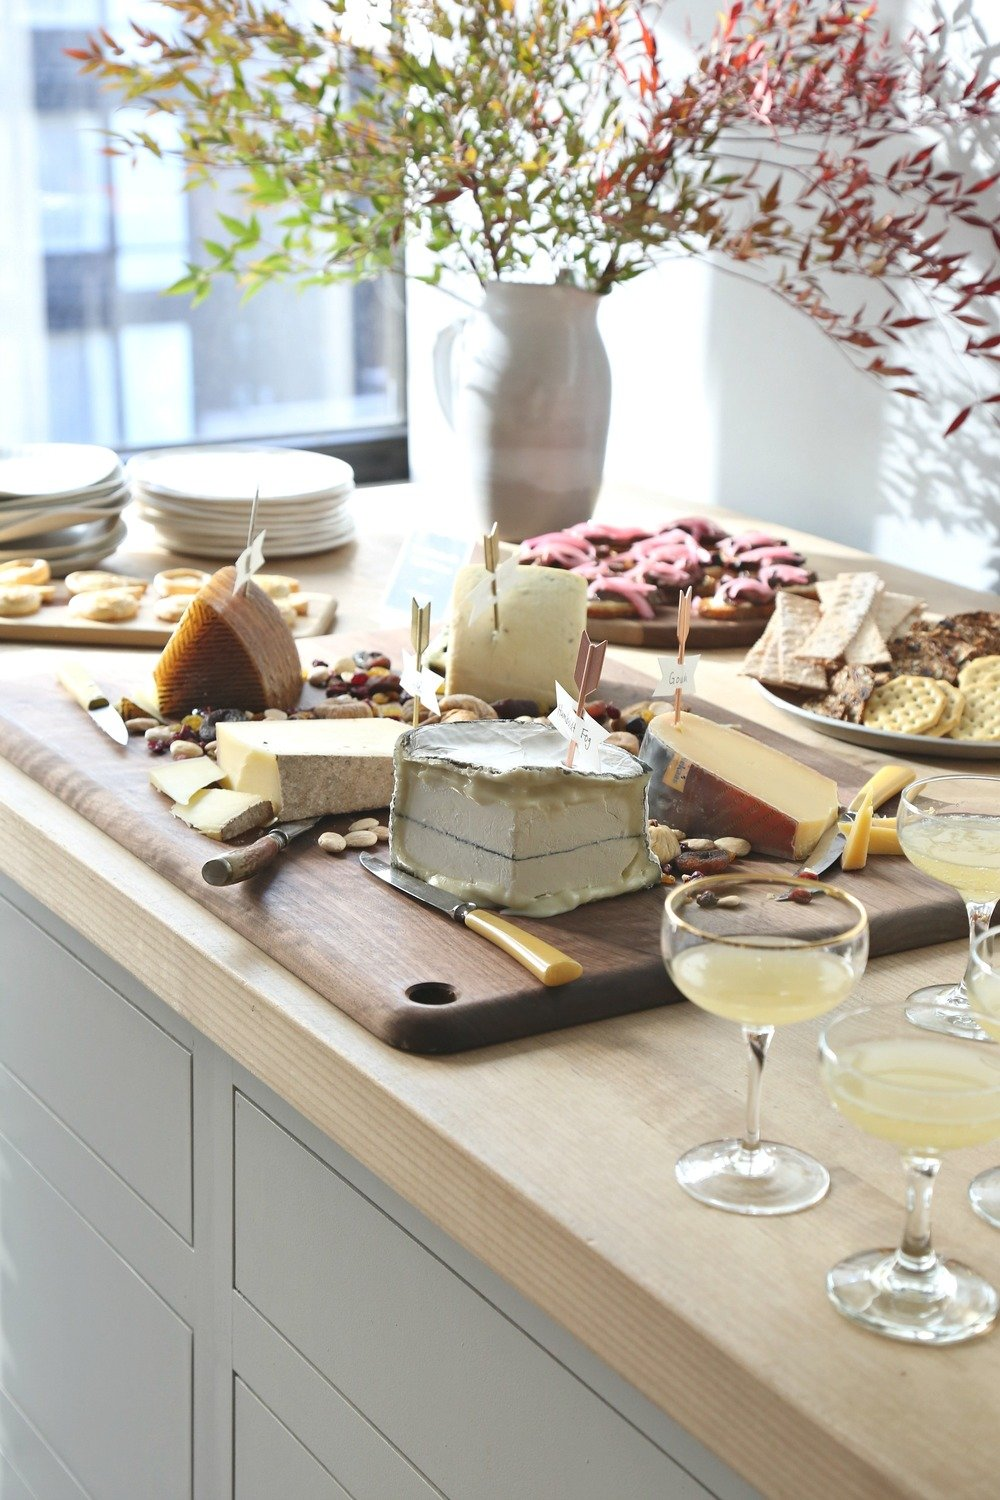 Tips for creating an easy cheese board